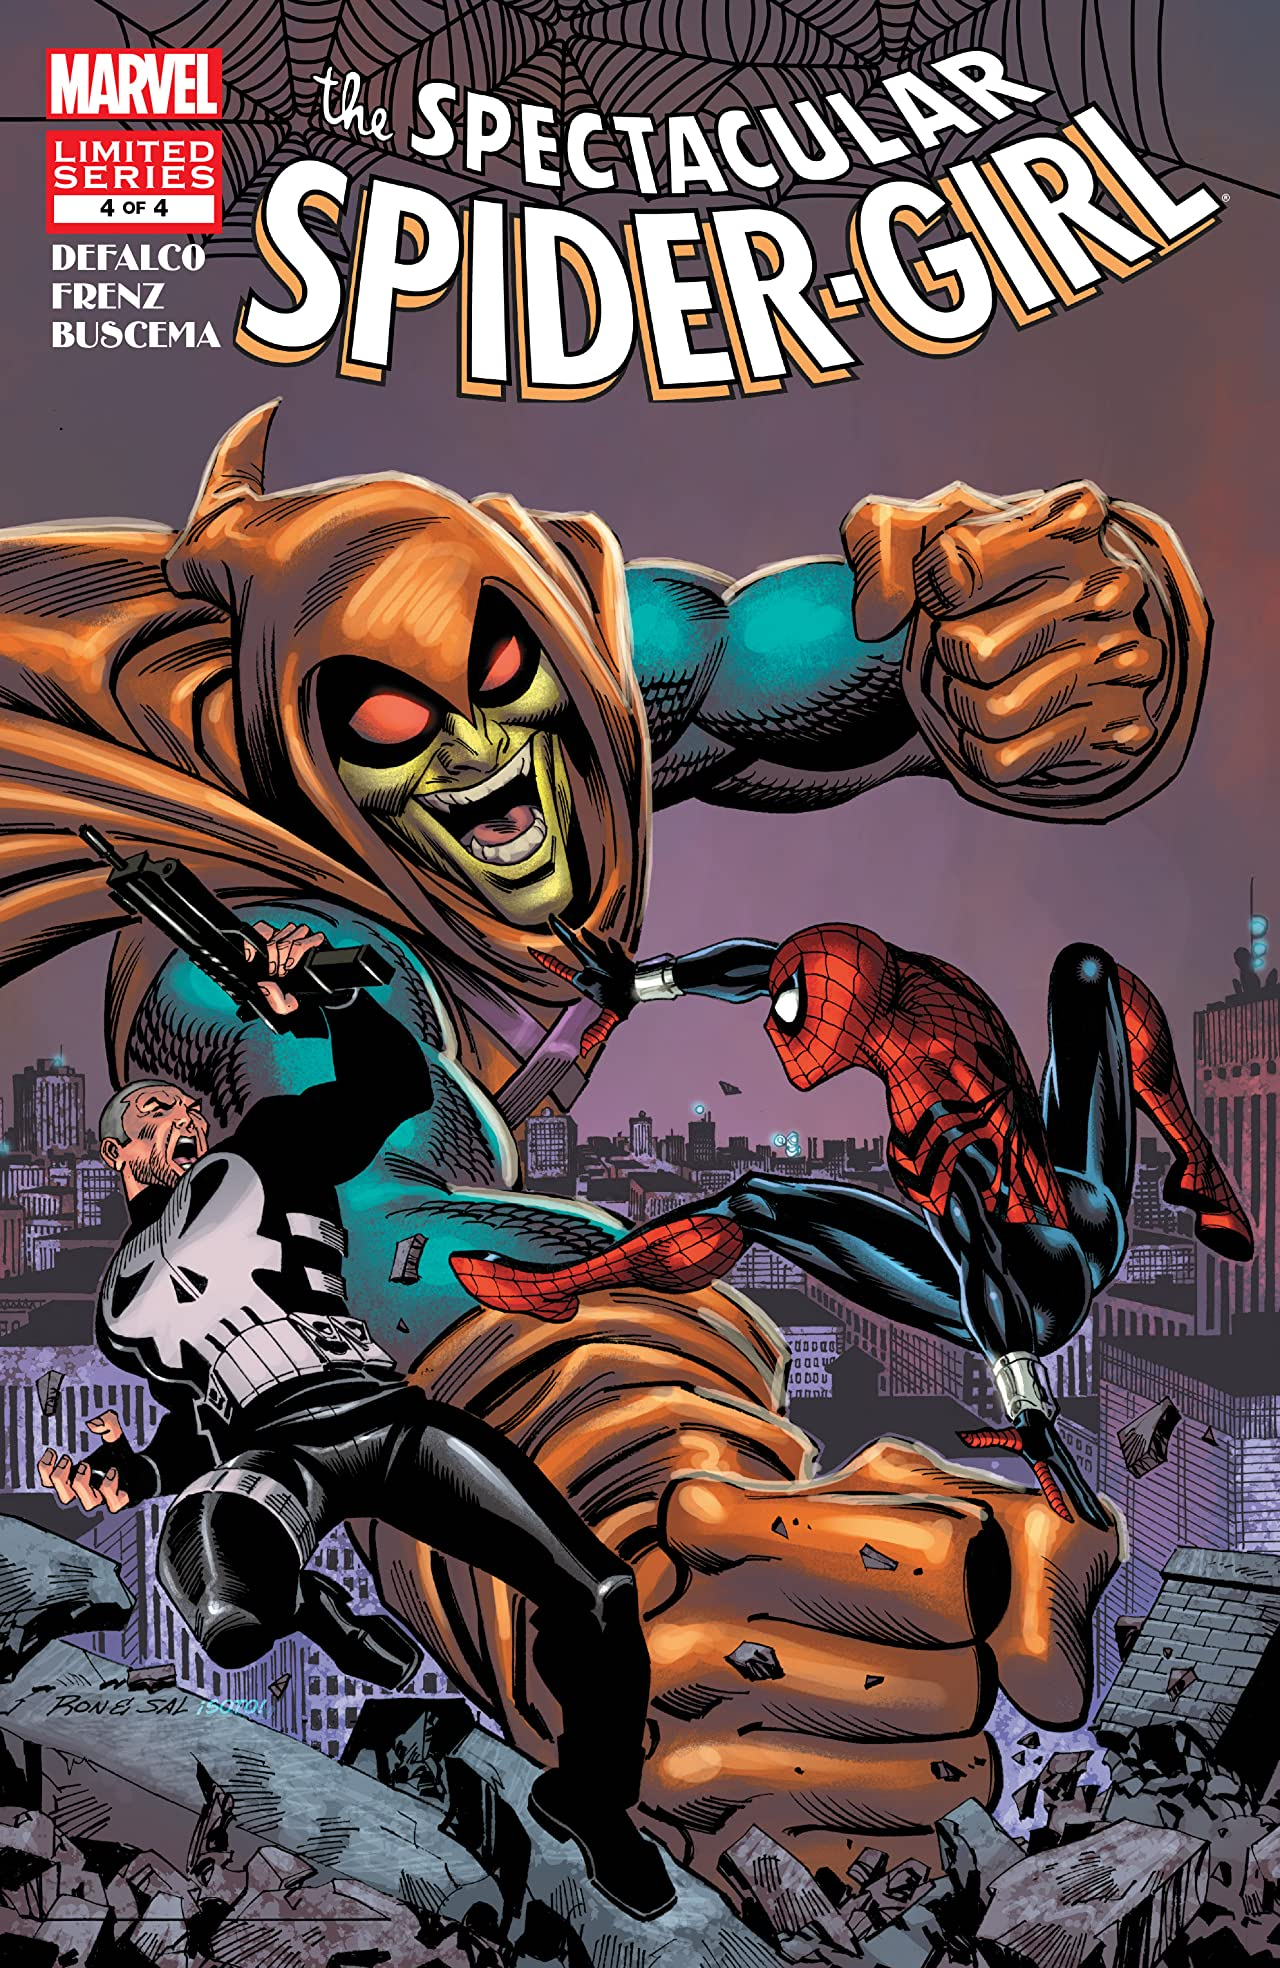 Spectacular Spider-Girl (2010) #4 (of 4)